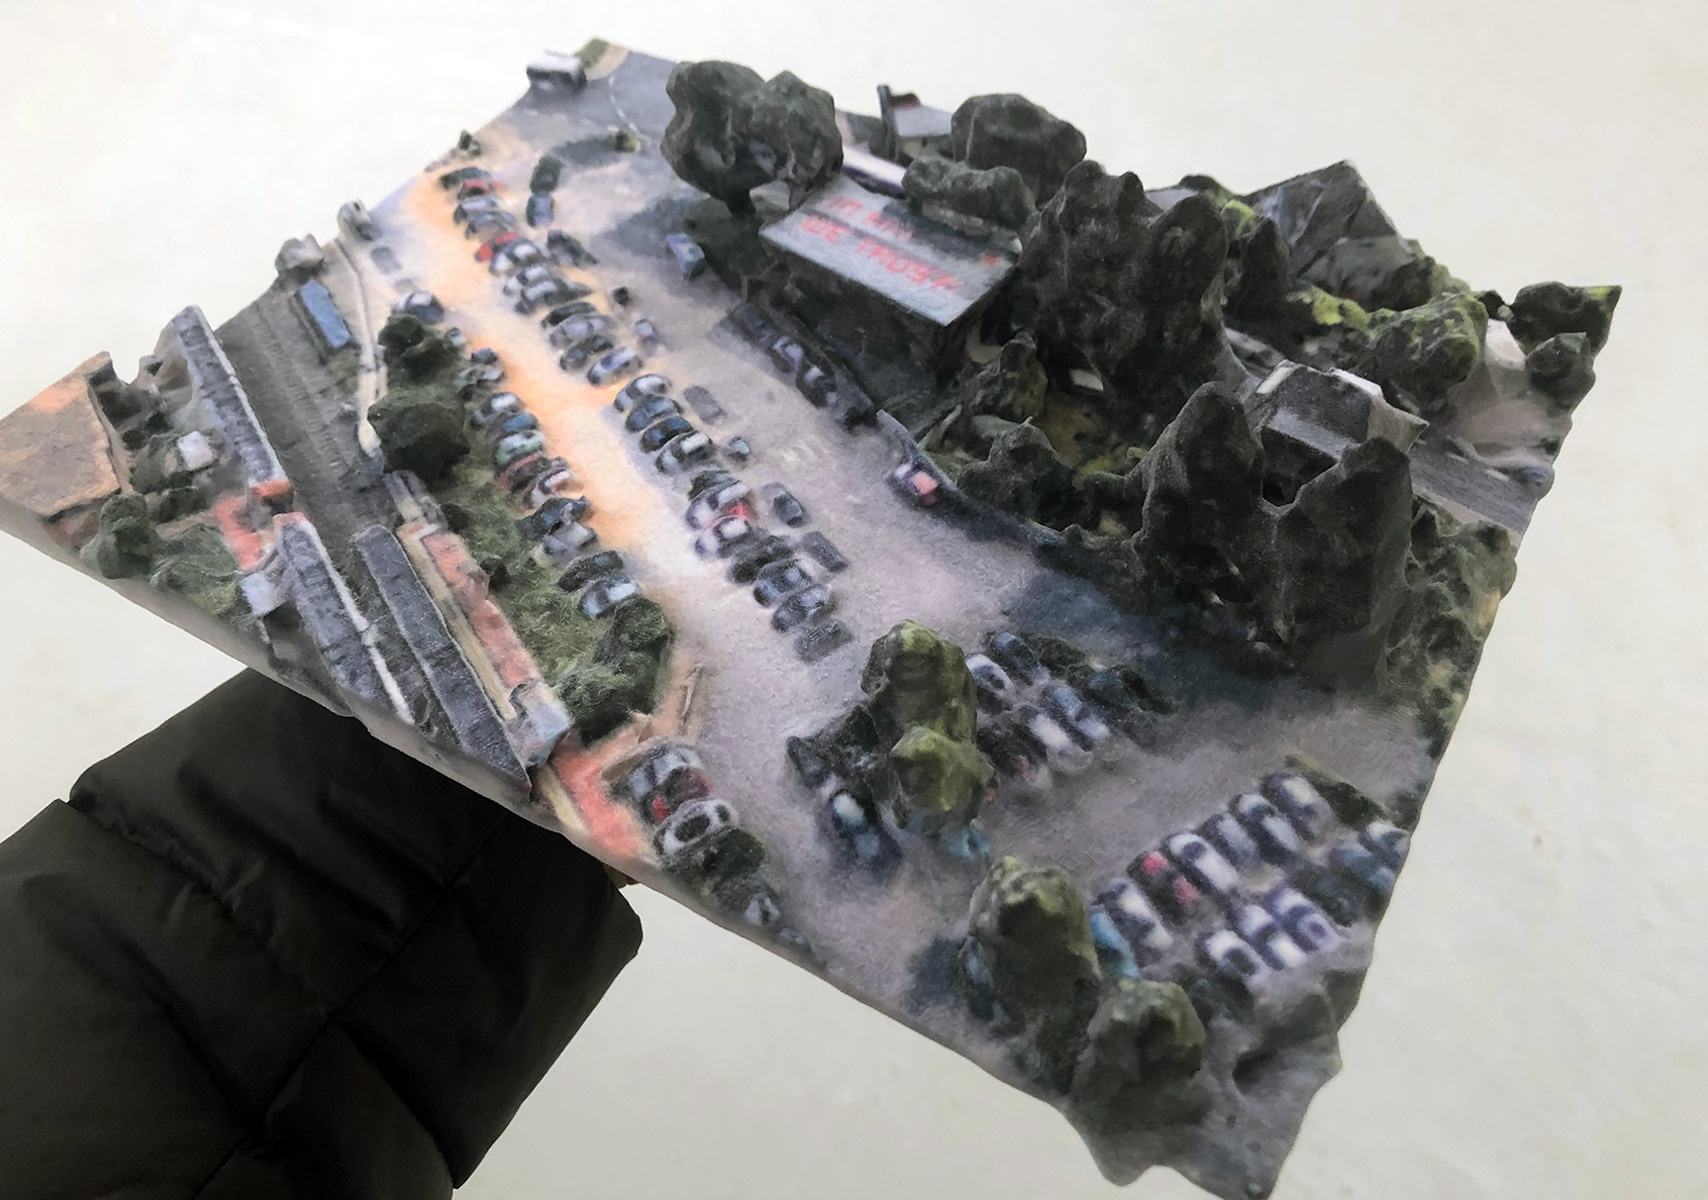 3D-GOOGLE-EARTH-MODEL # 1Fuhrwerkswaage Kunstraum, Cologne, (2018), A 3D print generated from 3D Google Earth data, 25 x 17,5 x 5 cm